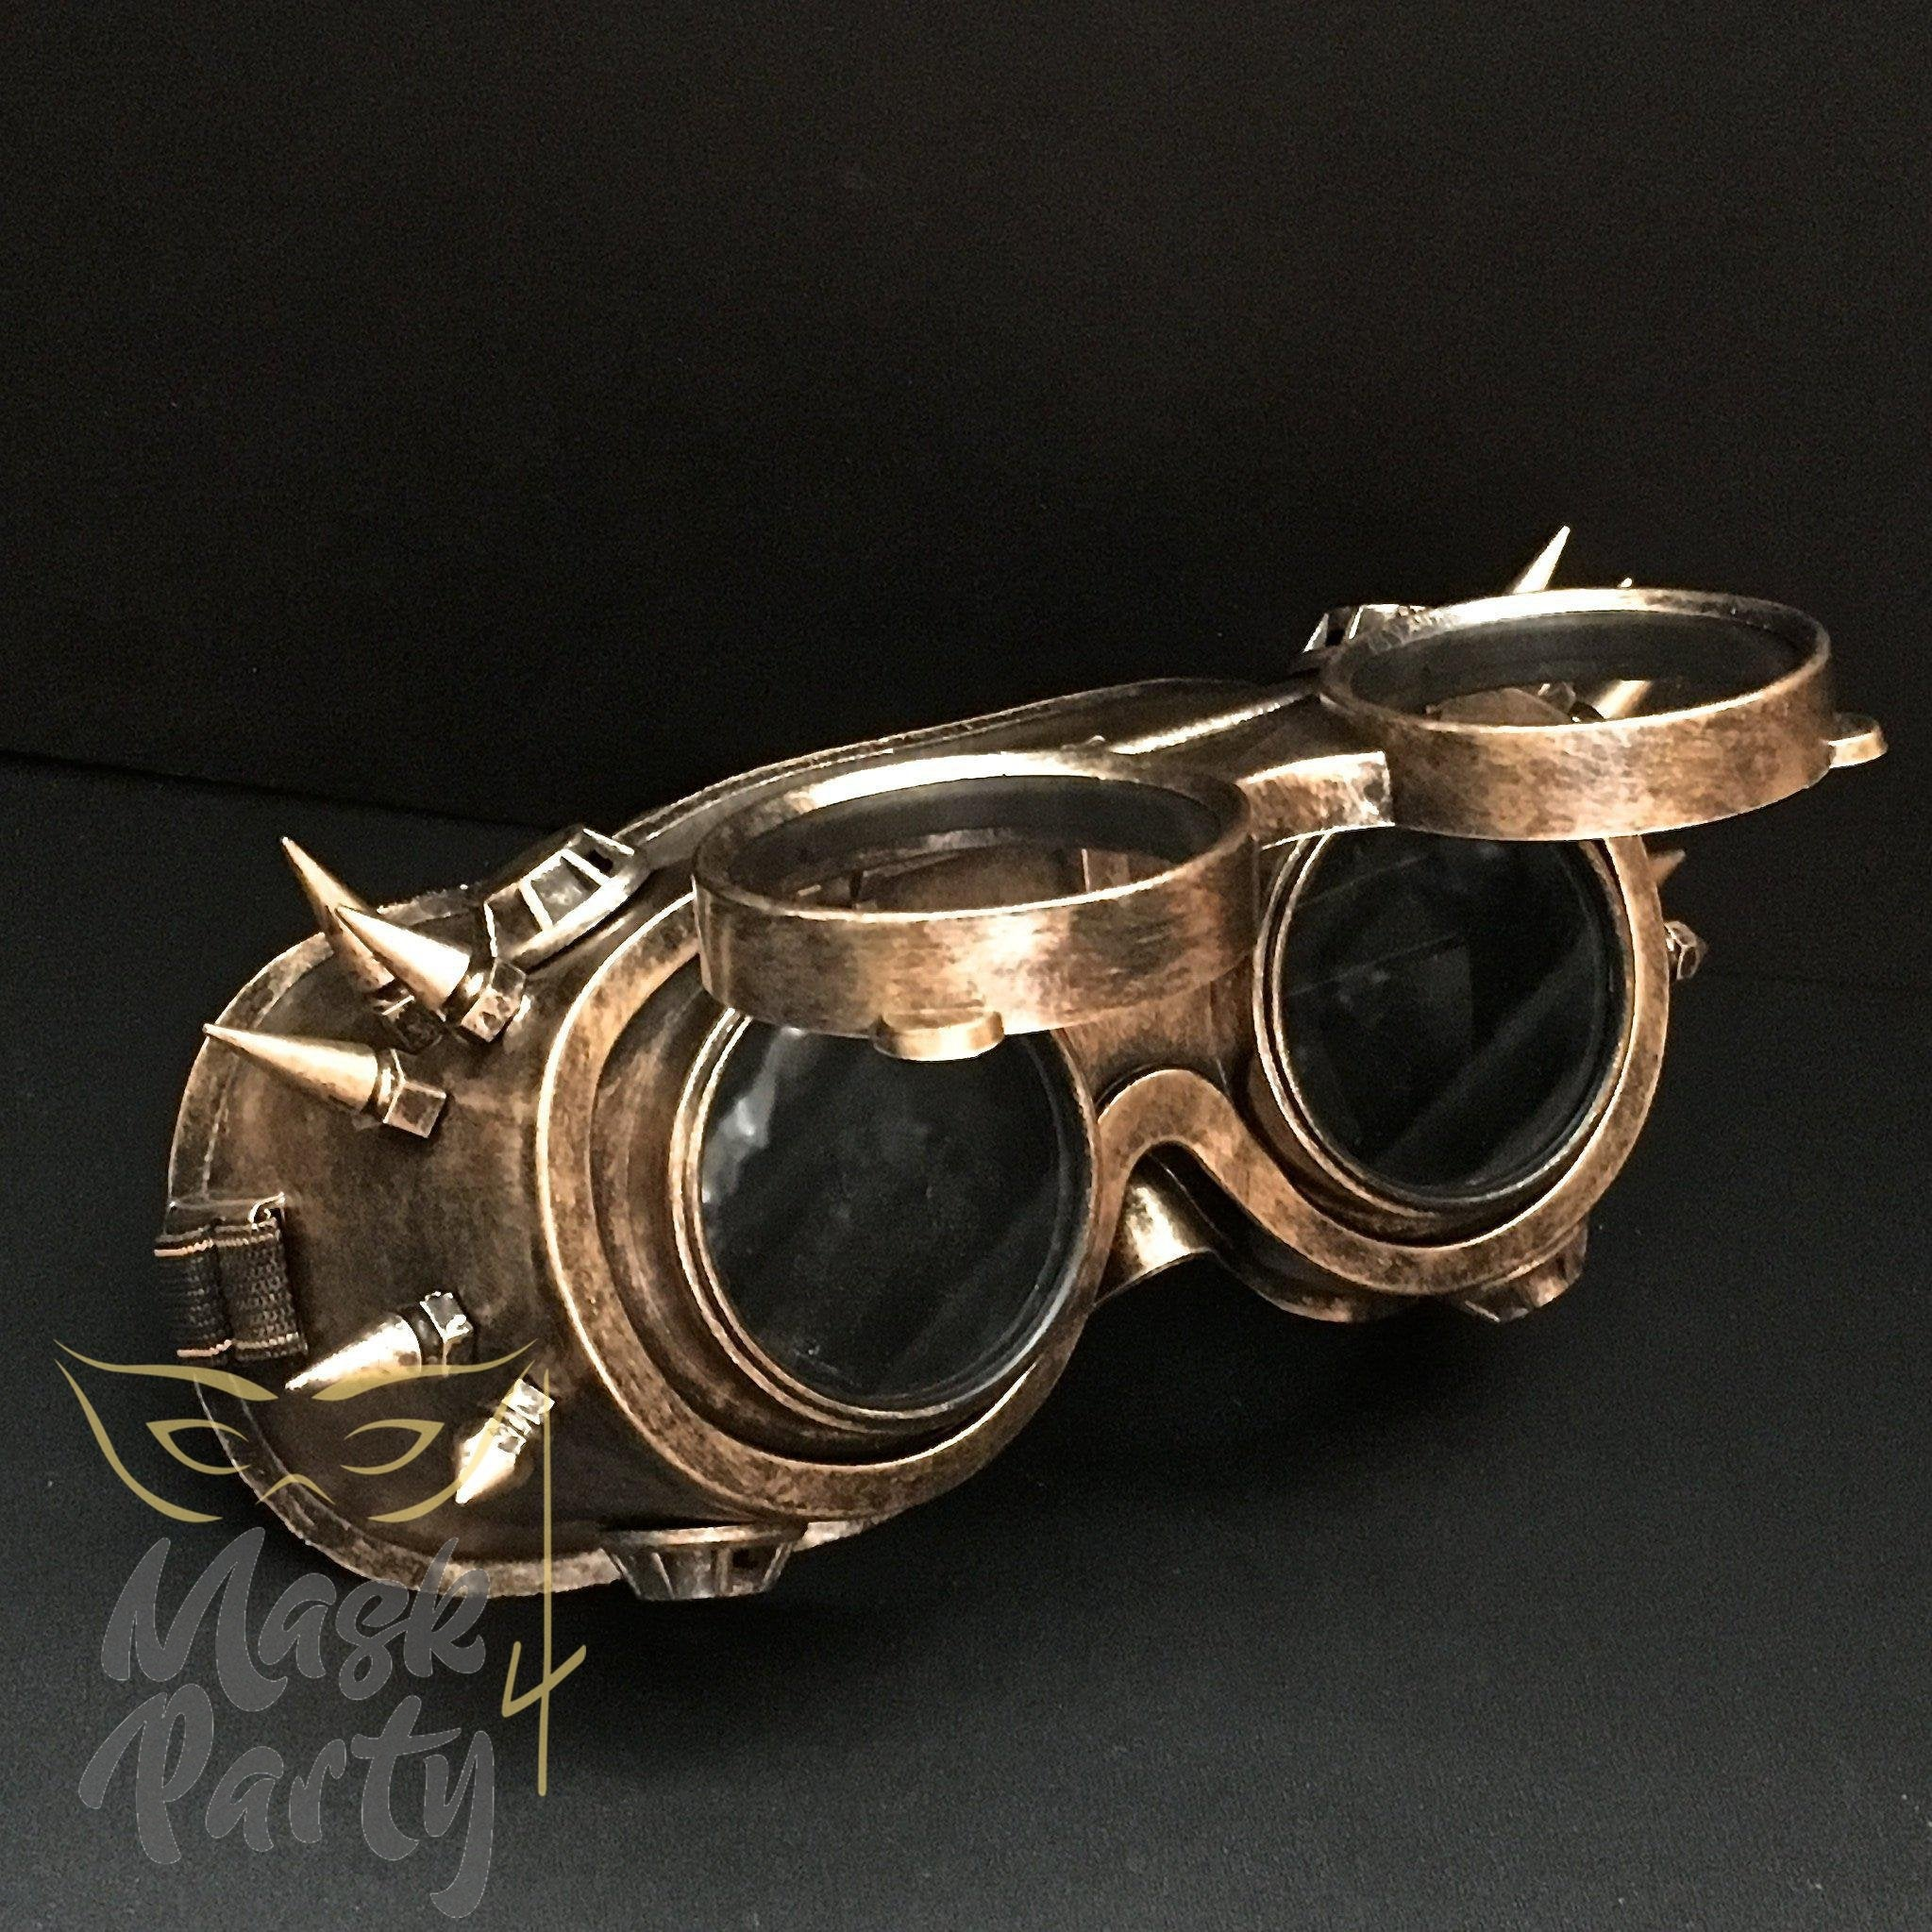 Steampunk Mask - Flip-Up Rivet Goggles - Gold/Black - Mask4Party